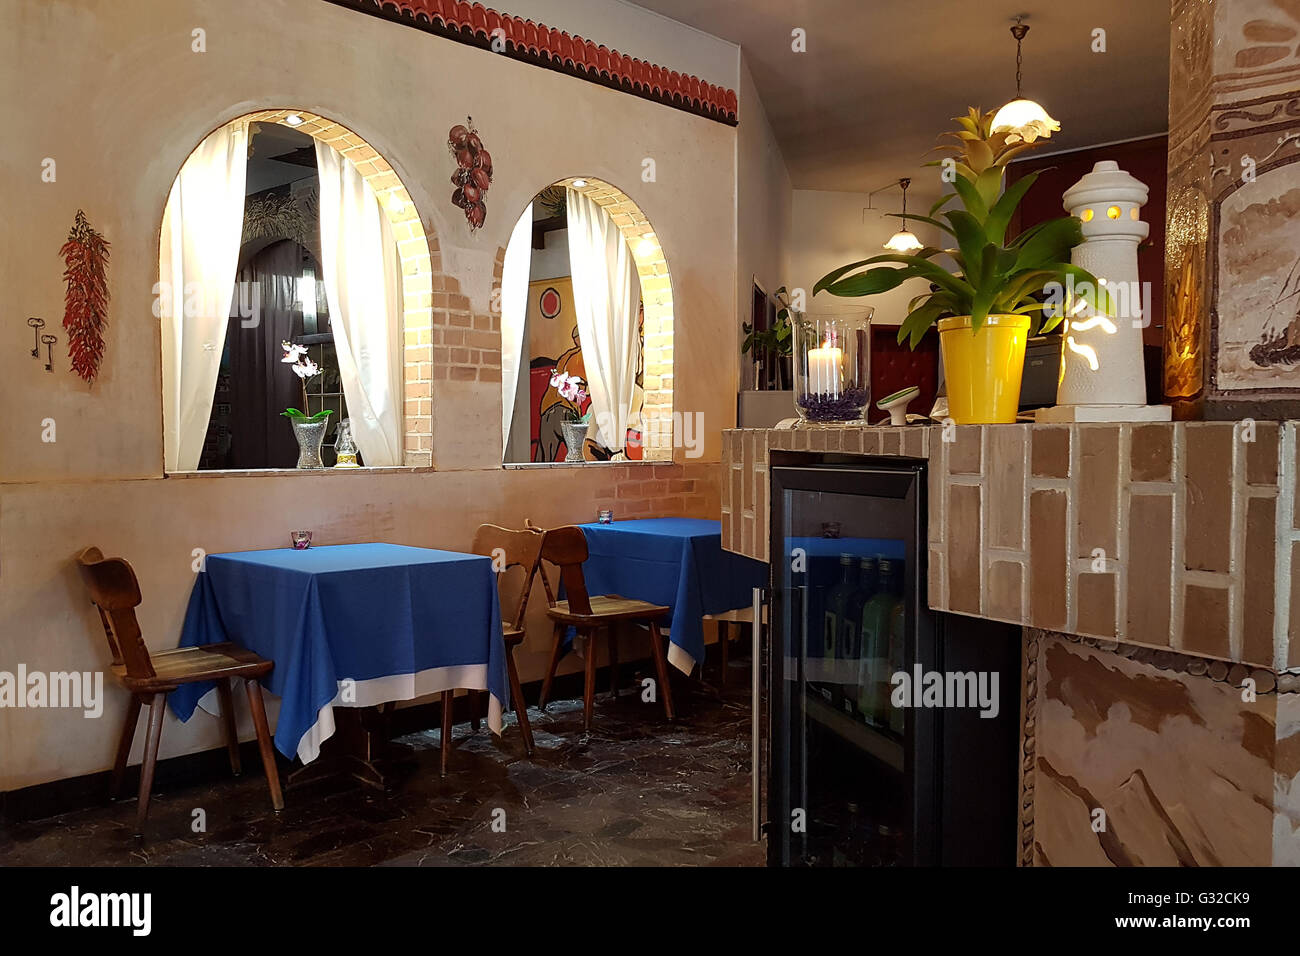 Italian restaurant interior stock photos